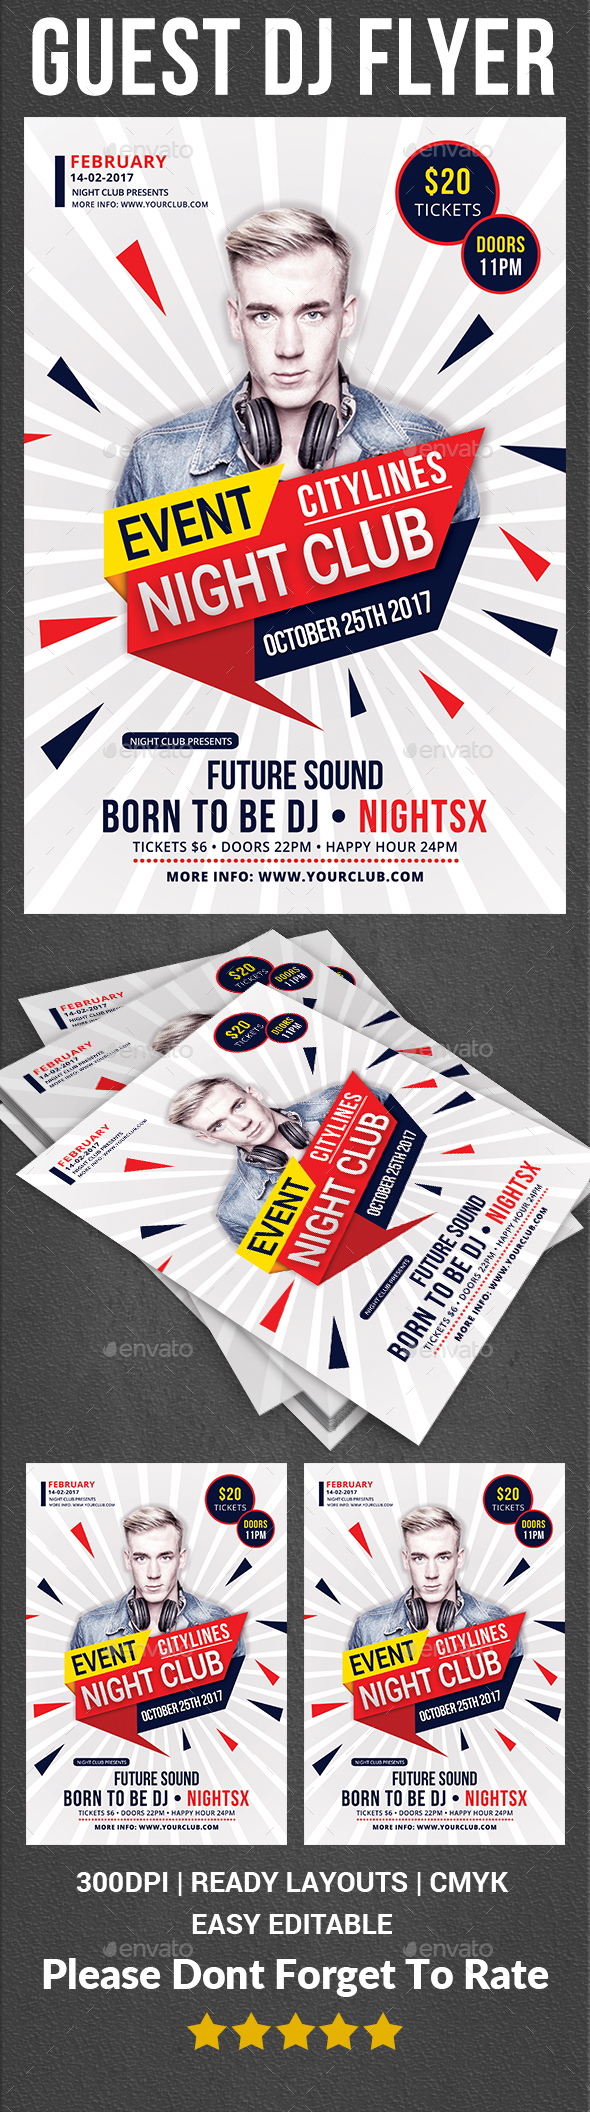 Guest Dj Flyer Print Templates - Clubs & Parties Events